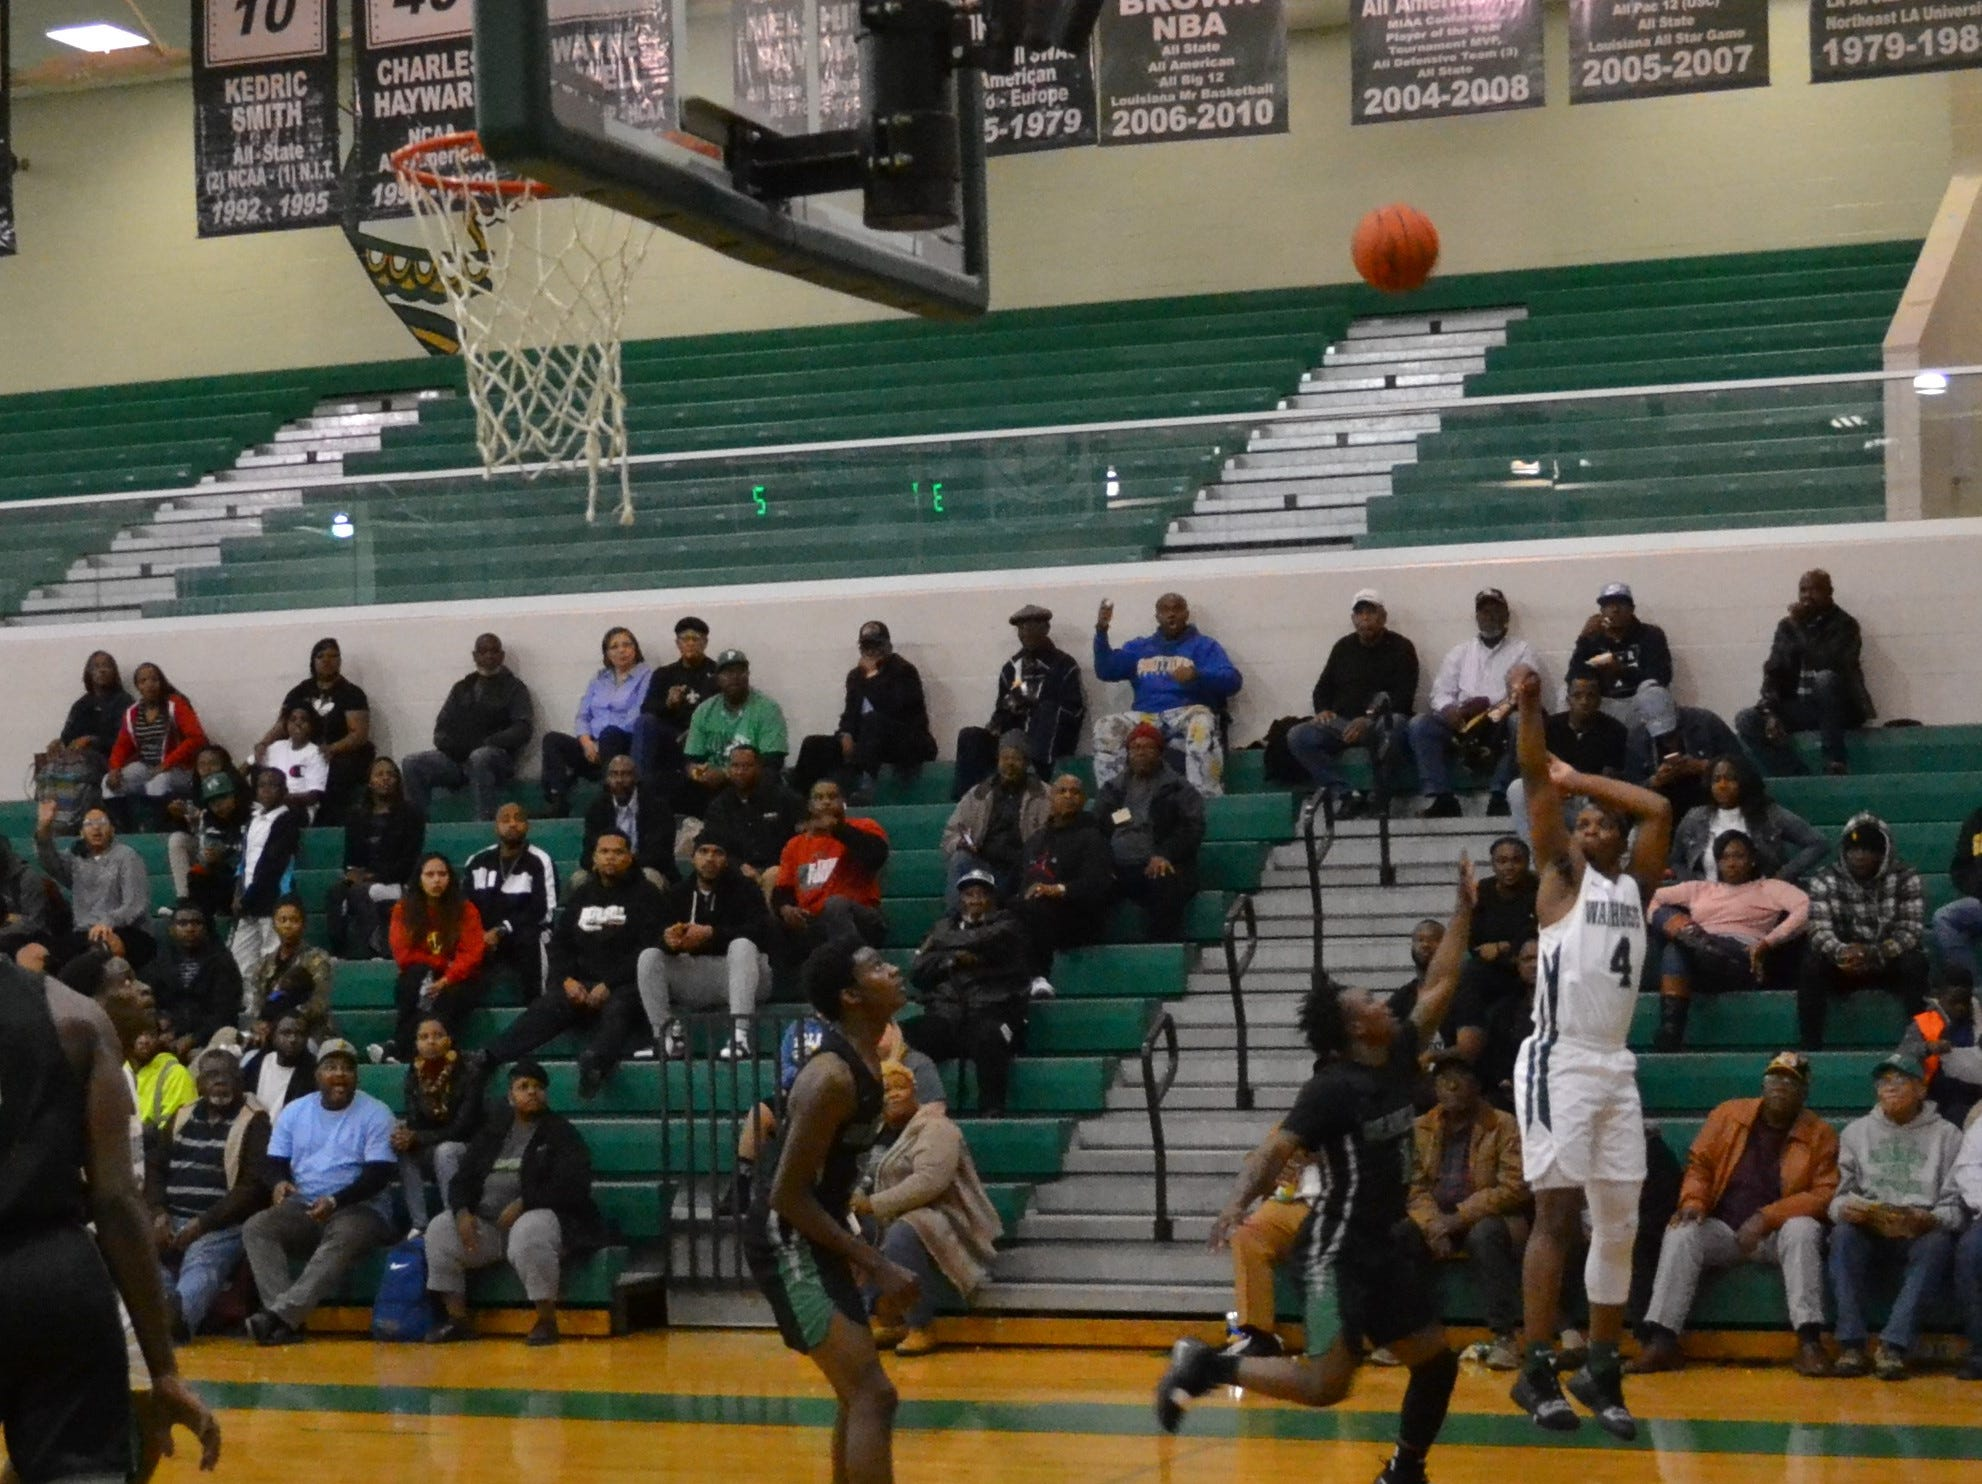 Kyron Gibson (4) launches a 3-point shot from the corner. The Peabody boys basketball team played the Bossier Bearkats Tuesday night at the Emerald Palace. Peabody got the win 72-67.